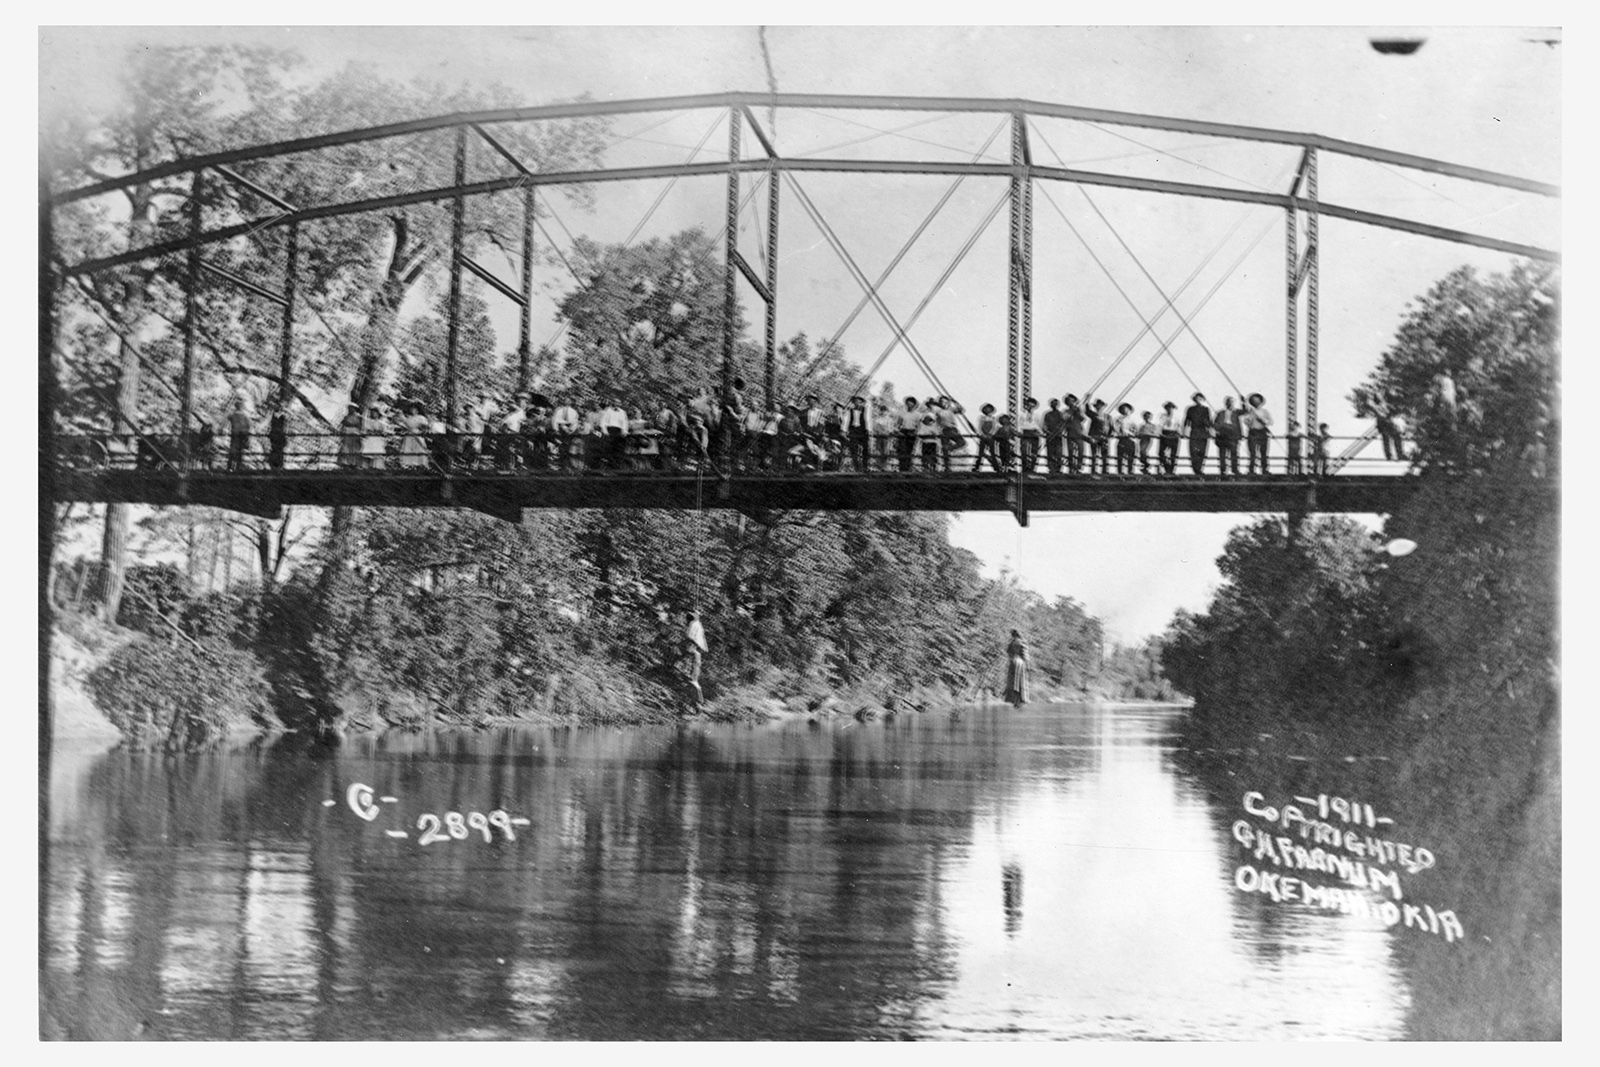 A photograph of a crowd of people standing on a bridge, from which two dead black people are dangling.